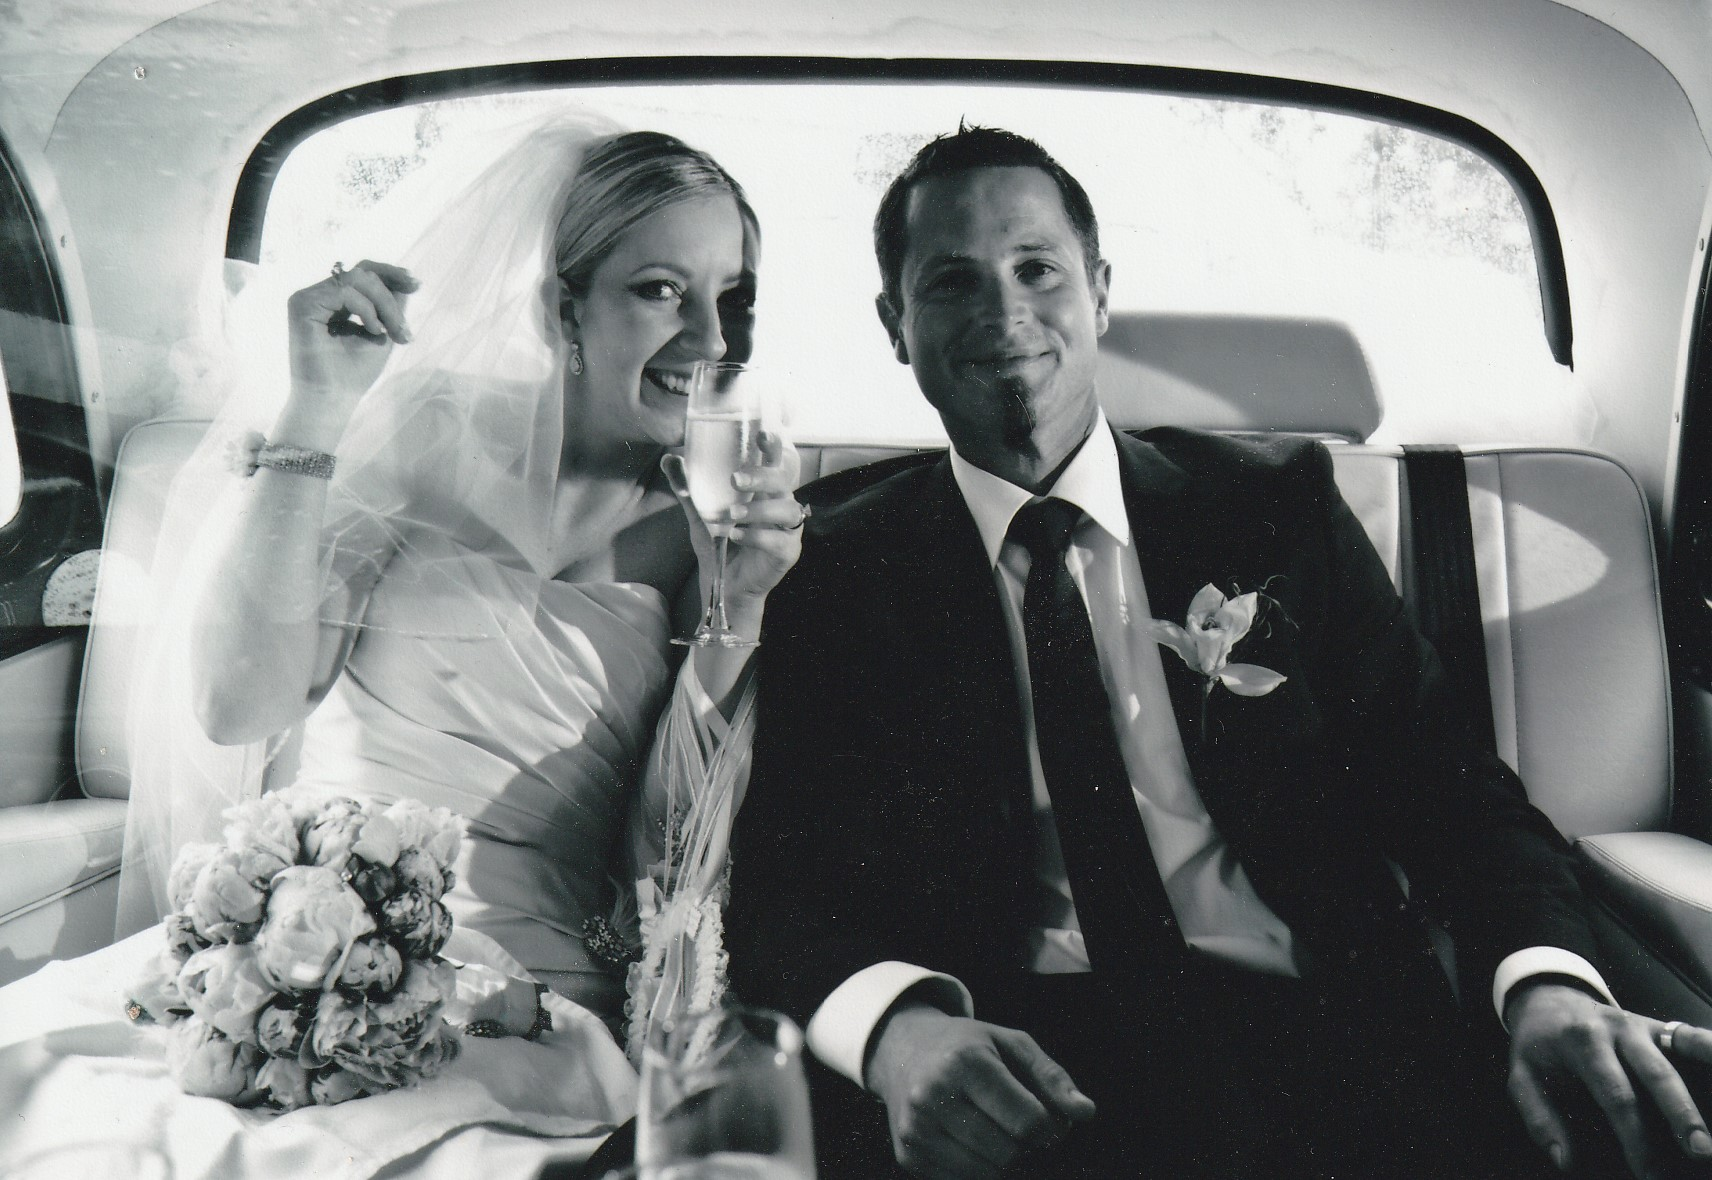 London taxi wedding services Melbourne